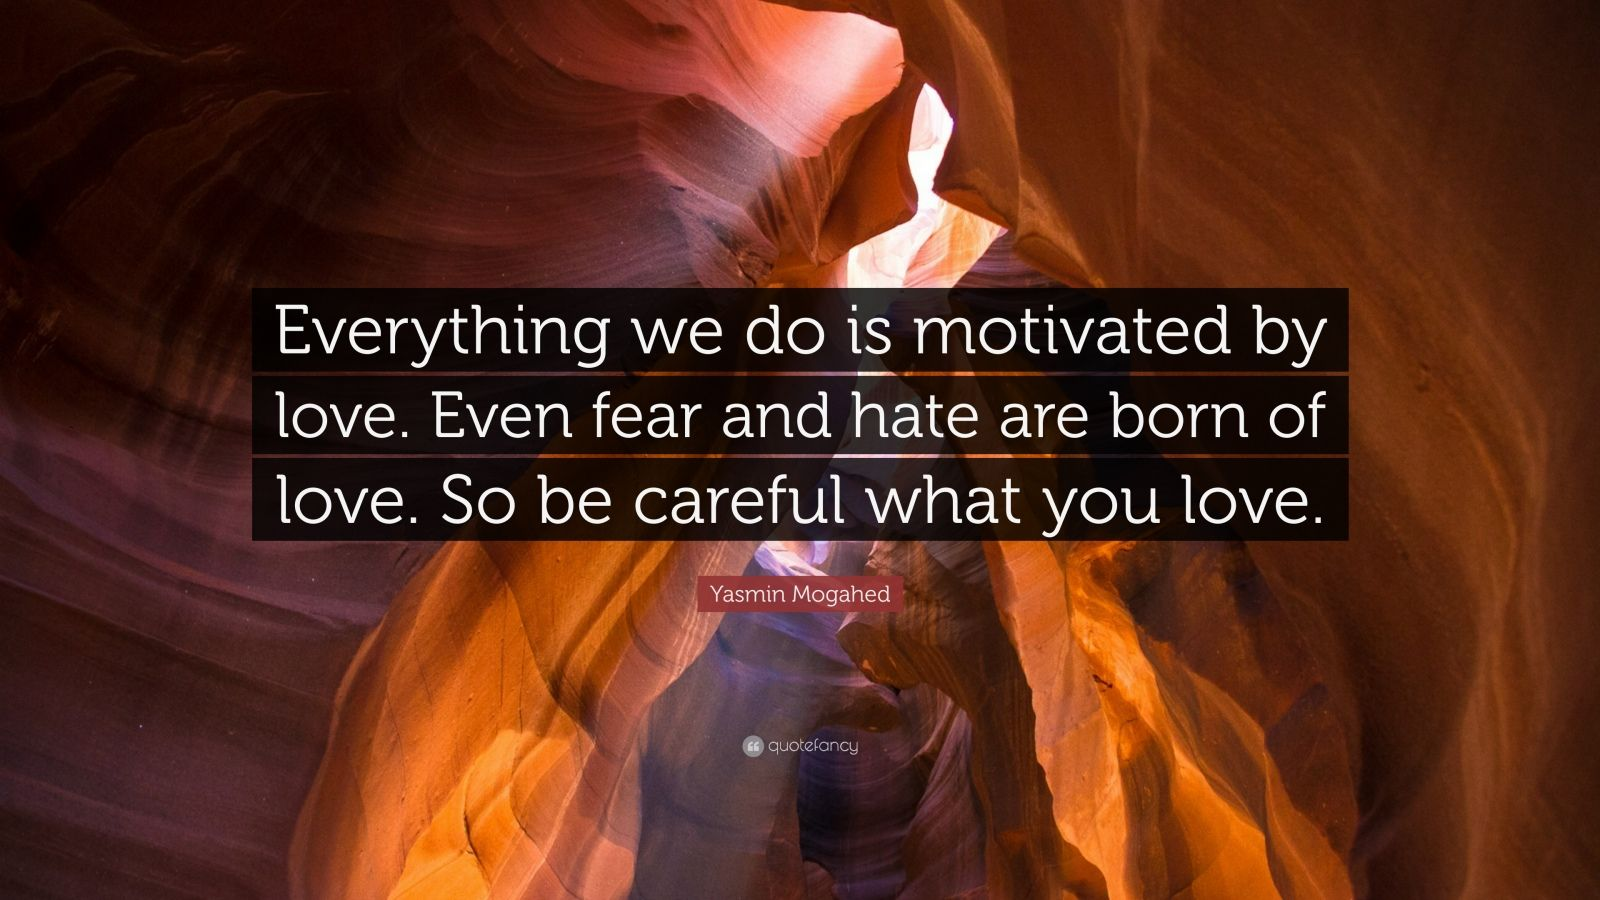 """Yasmin Mogahed Quote: """"Everything we do is motivated by love. Even fear and hate are born of love. So be careful what you love."""""""